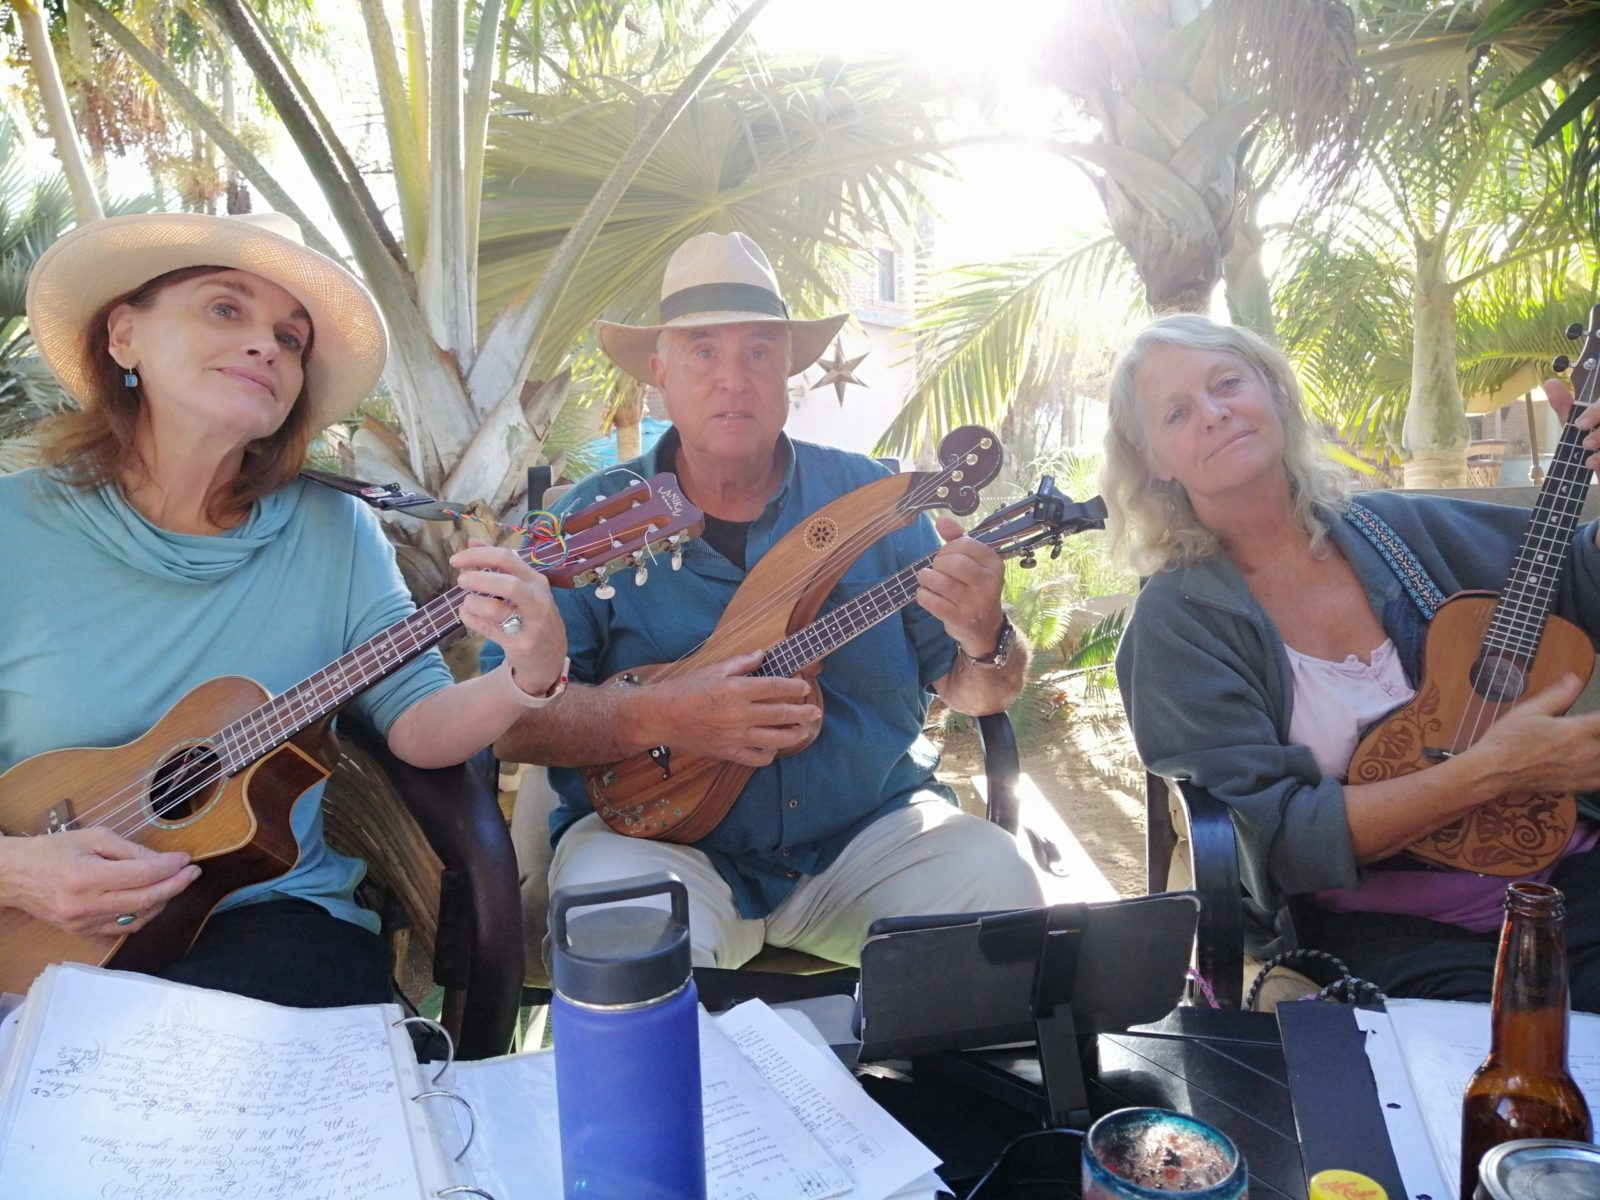 Guests of Casa Oasis Todos Santos Vacation Rental are welcome to borrow a ukulele and join our weekly Ukulele Club gatherings at Teatro Luna Azul